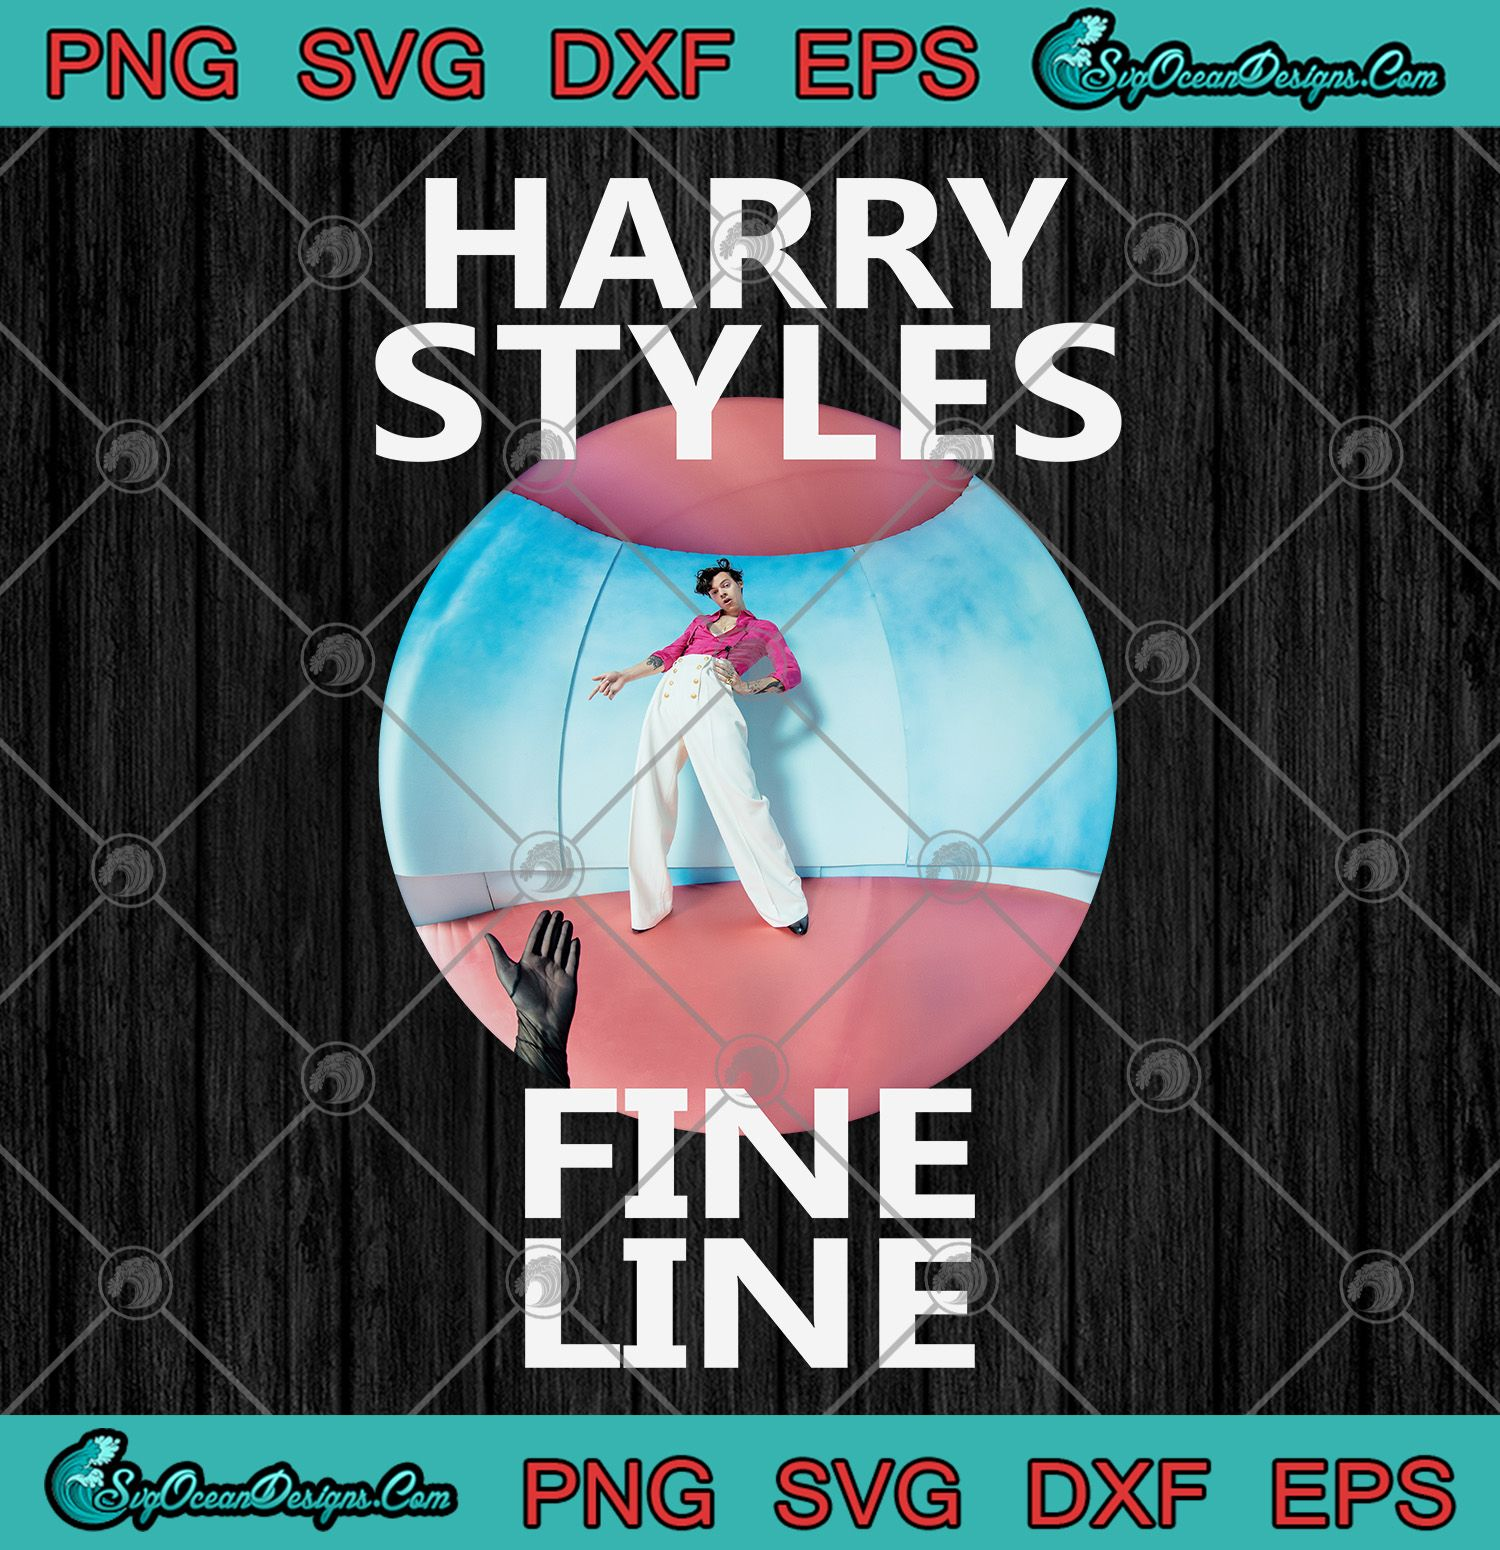 Harry Styles Fine Line Funny Png Digital Download Clip Art Designs For Shirts Harry Styles Png Harry Styles Art Design Clip Art